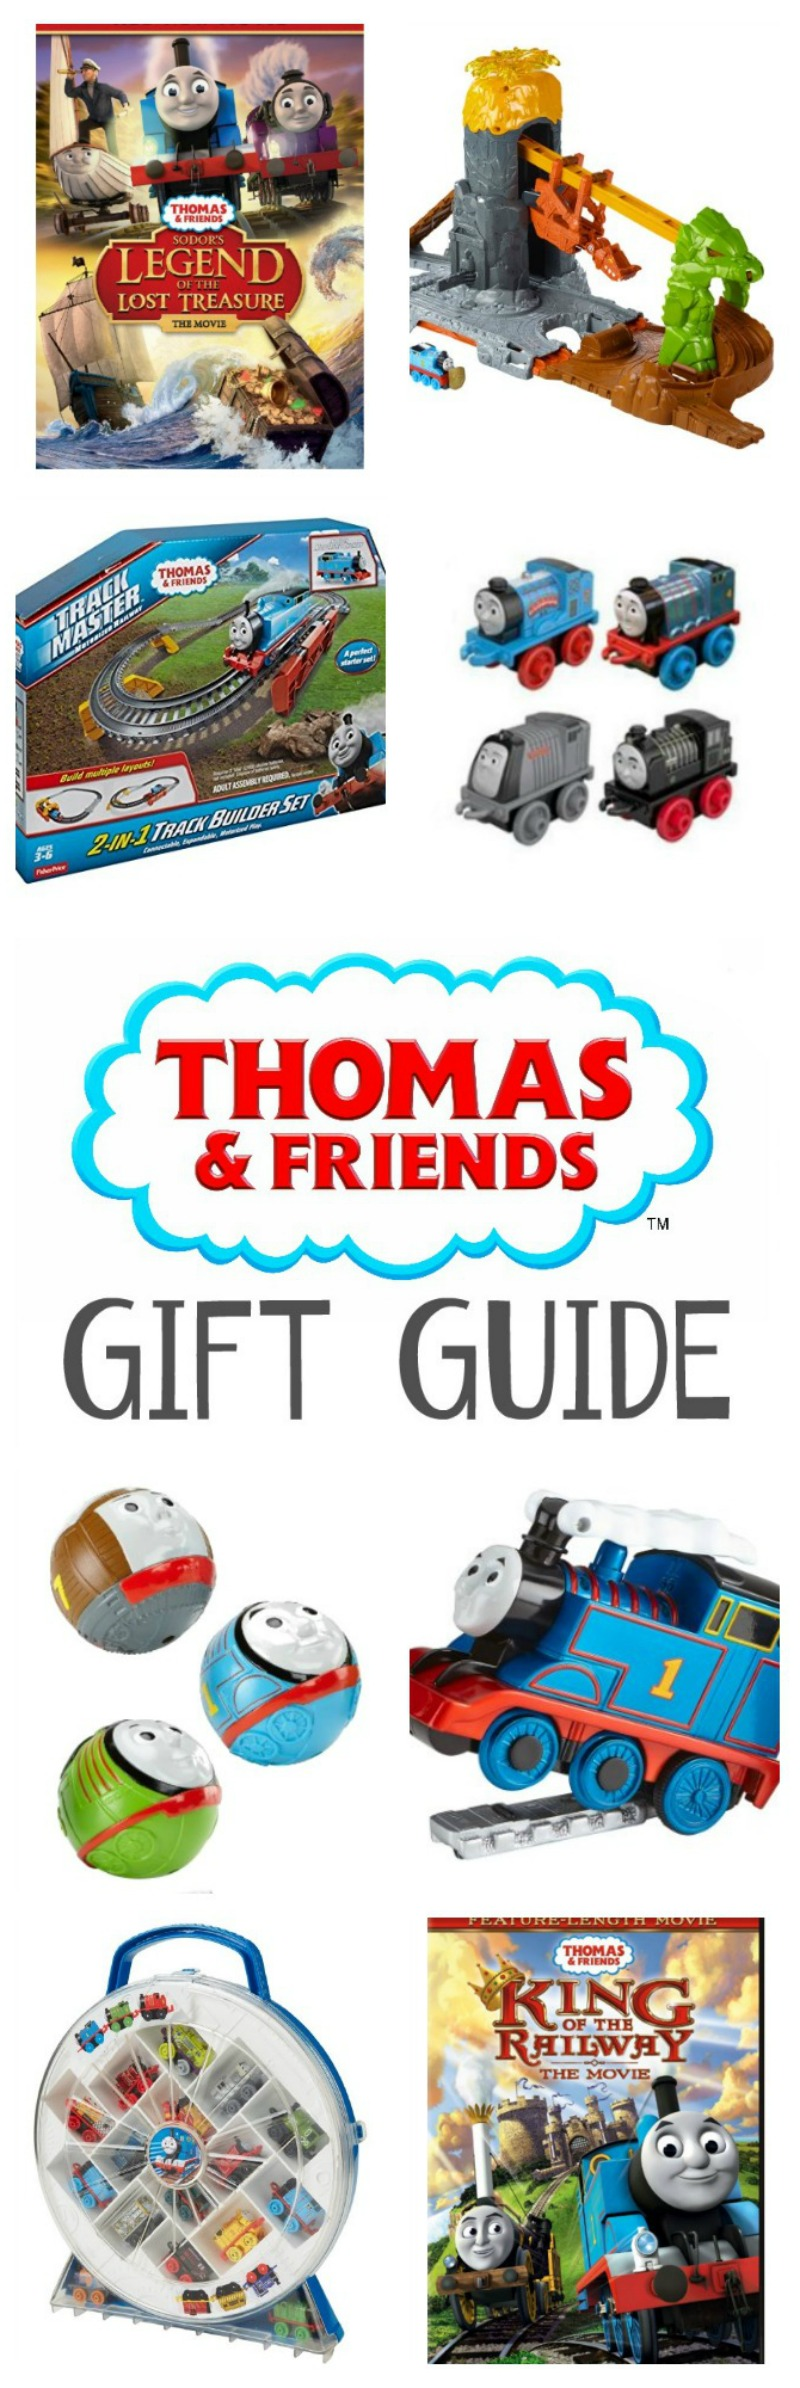 Do you have a Thomas the Train lover in your house? Then our @ThomasandFriends is sure to make this Christmas extra special for your favorite little engineer! #ThomasandFriends #ad